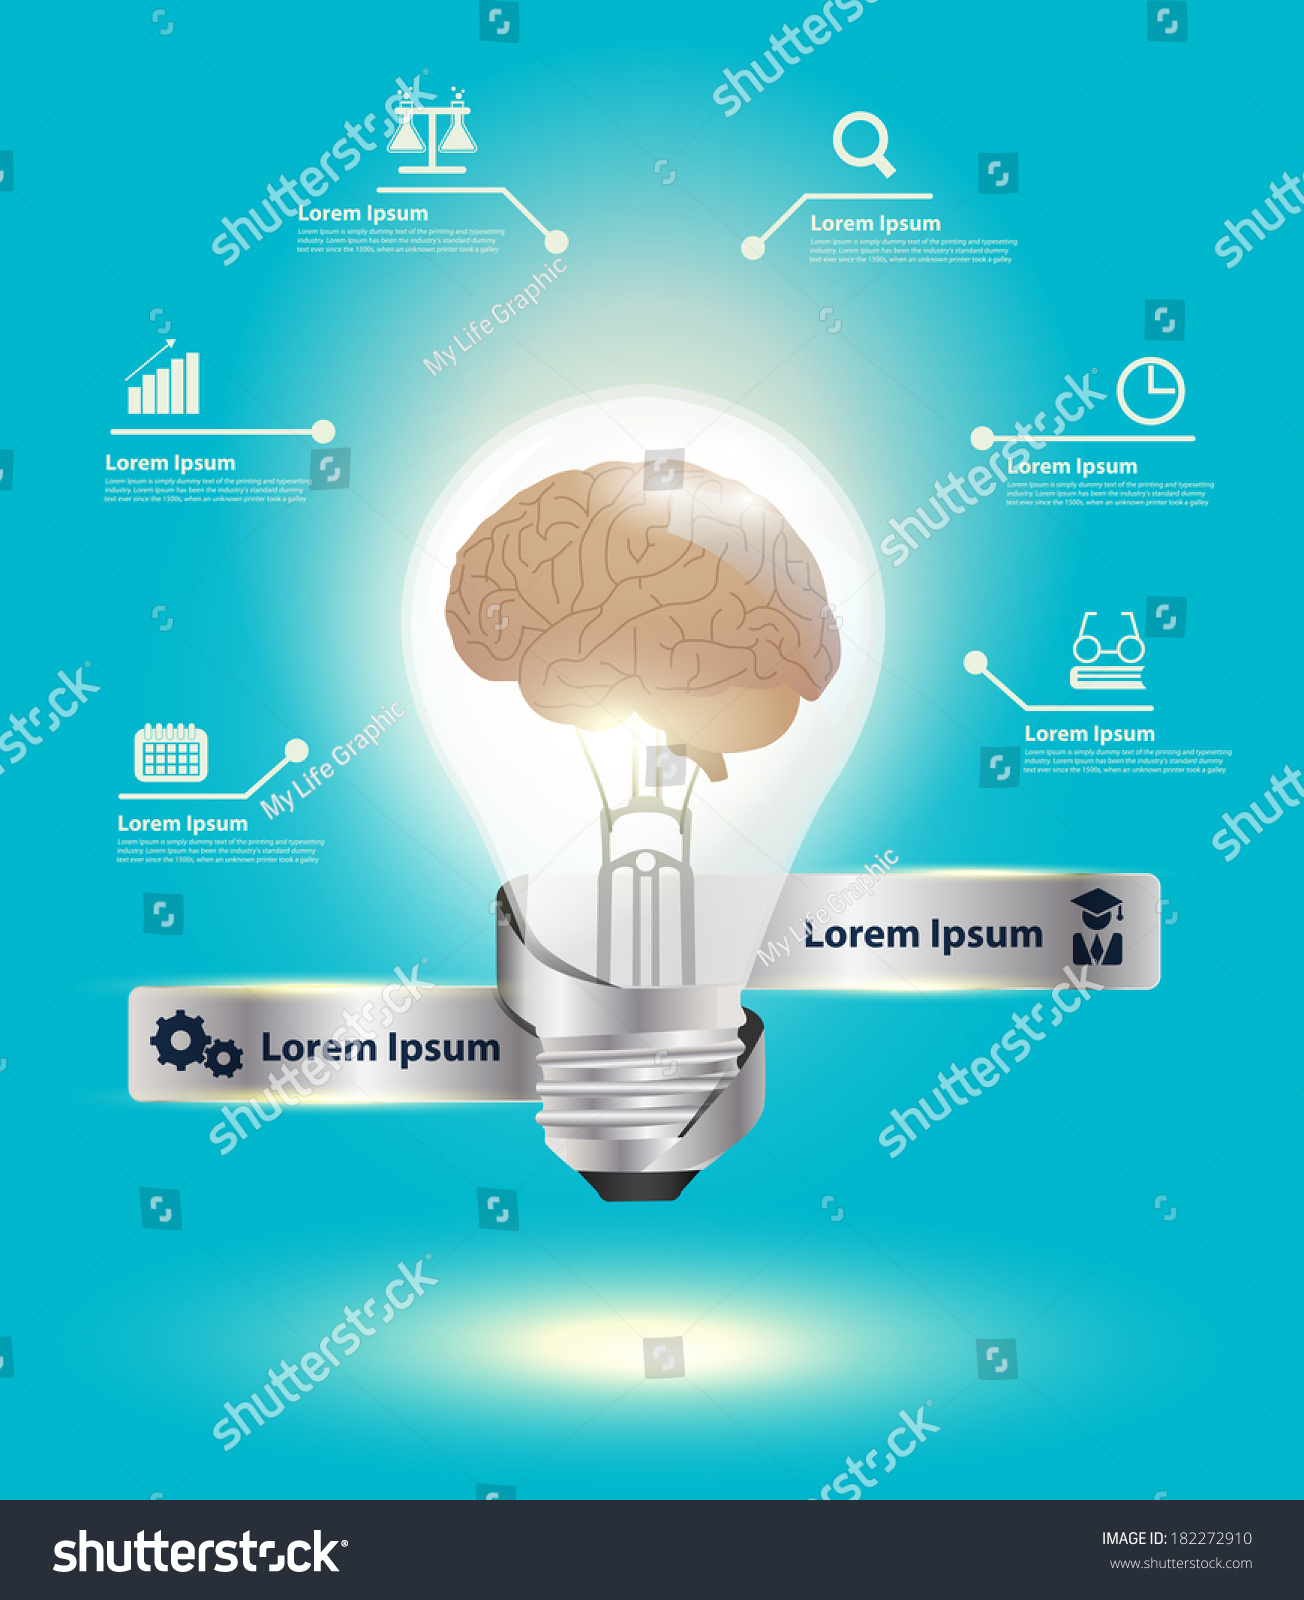 Light Bulb Brain Idea Concept Inspiration Stock Vector Royalty Free Diagram Of Incandescent With Modern Design Template Workflow Layout